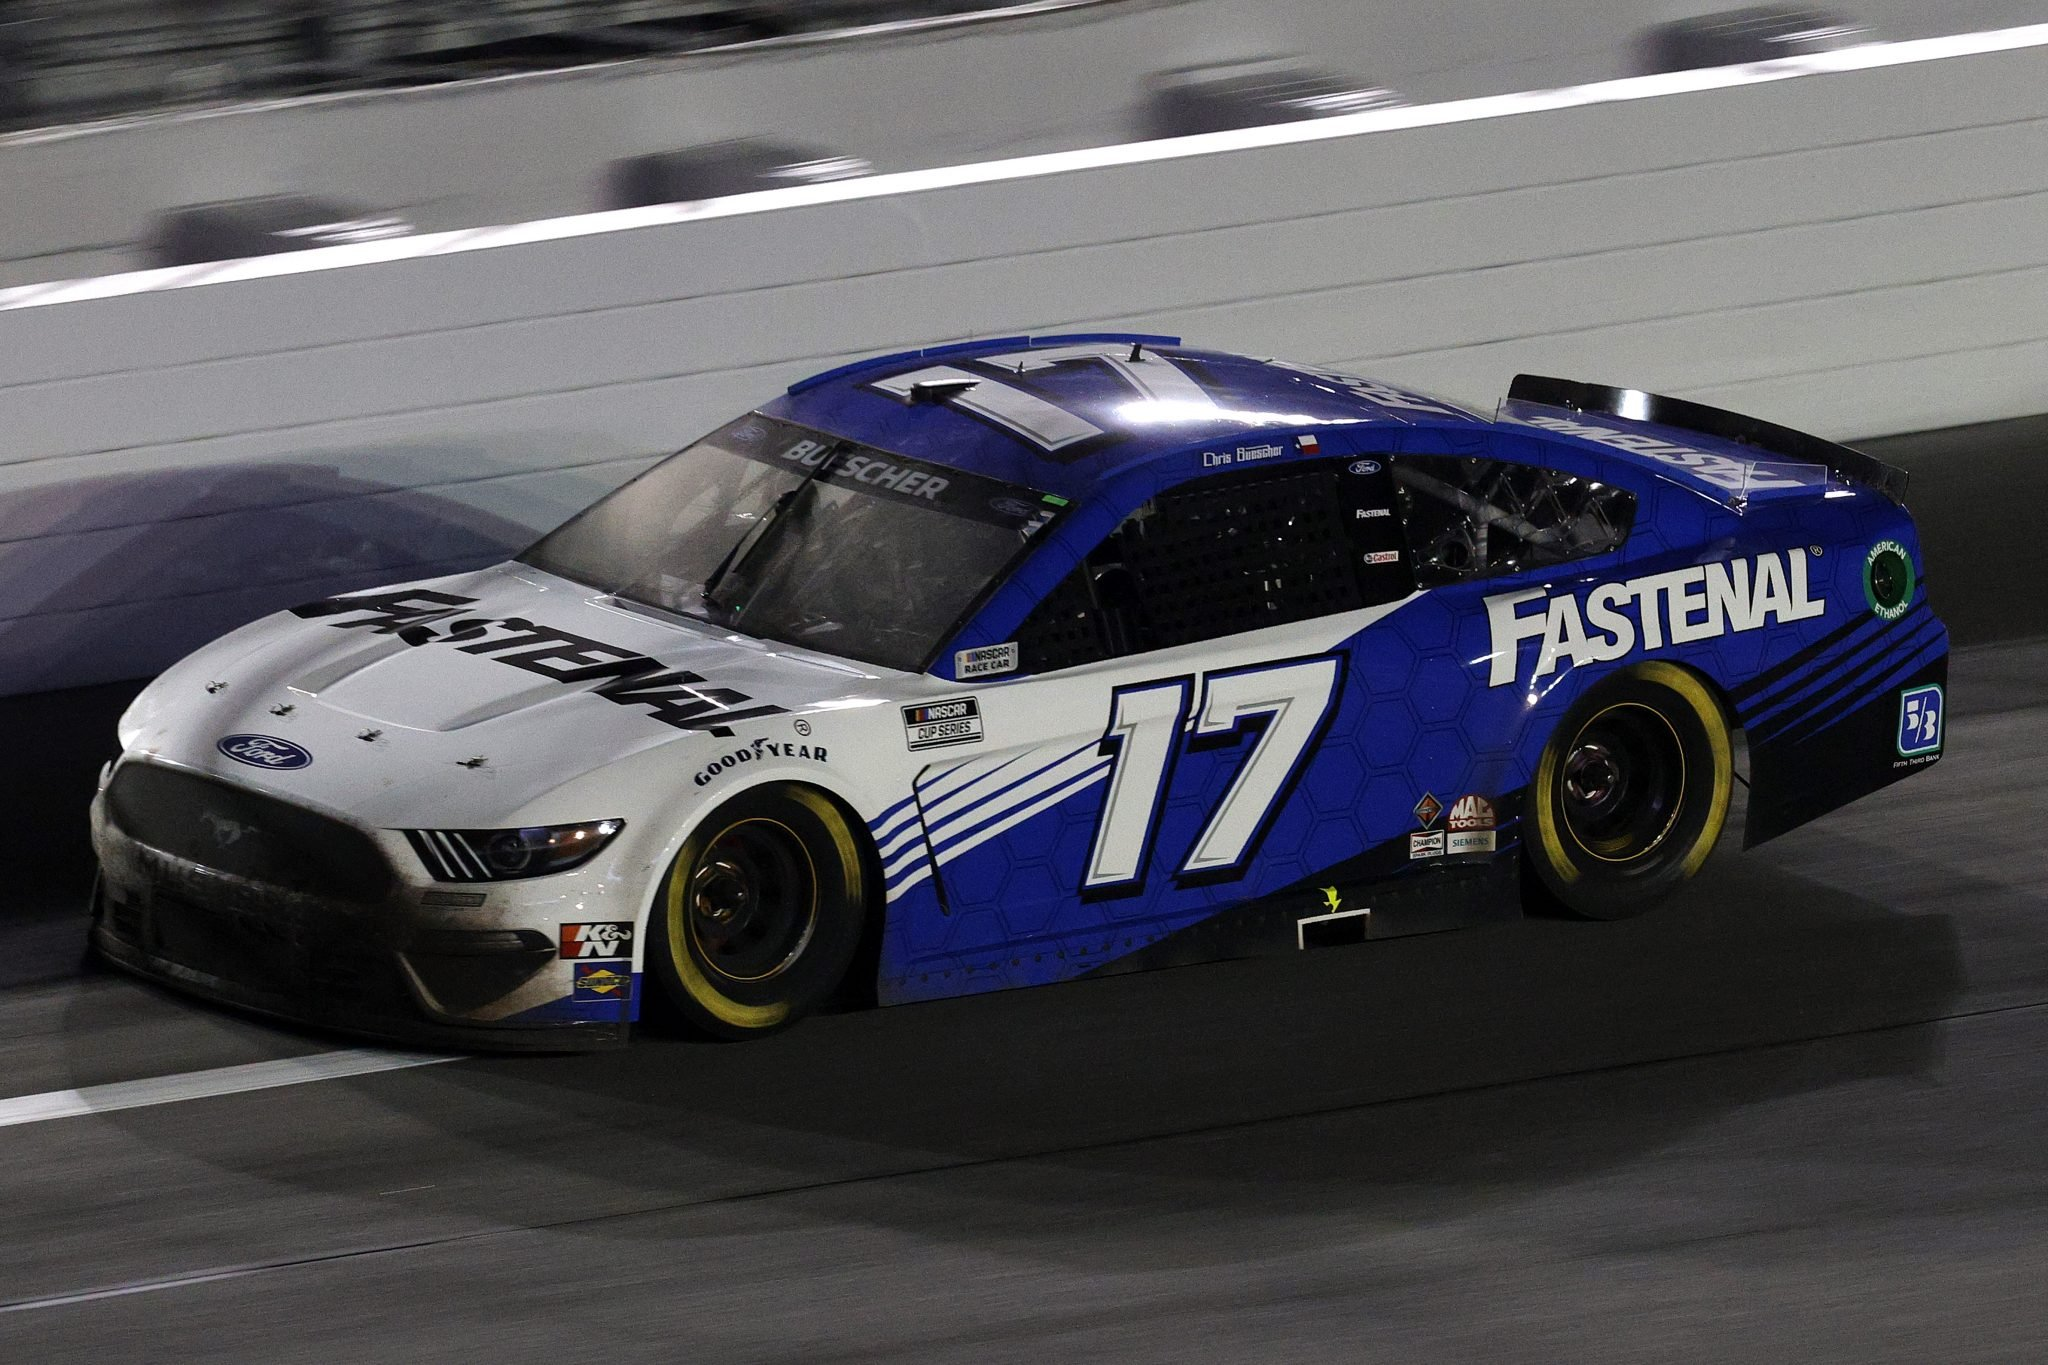 DAYTONA BEACH, FLORIDA - FEBRUARY 09: Chris Buescher, driver of the #17 Fastenal Ford, drives during the NASCAR Cup Series Busch Clash at Daytona at Daytona International Speedway on February 09, 2021 in Daytona Beach, Florida. (Photo by Chris Graythen/Getty Images) | Getty Images